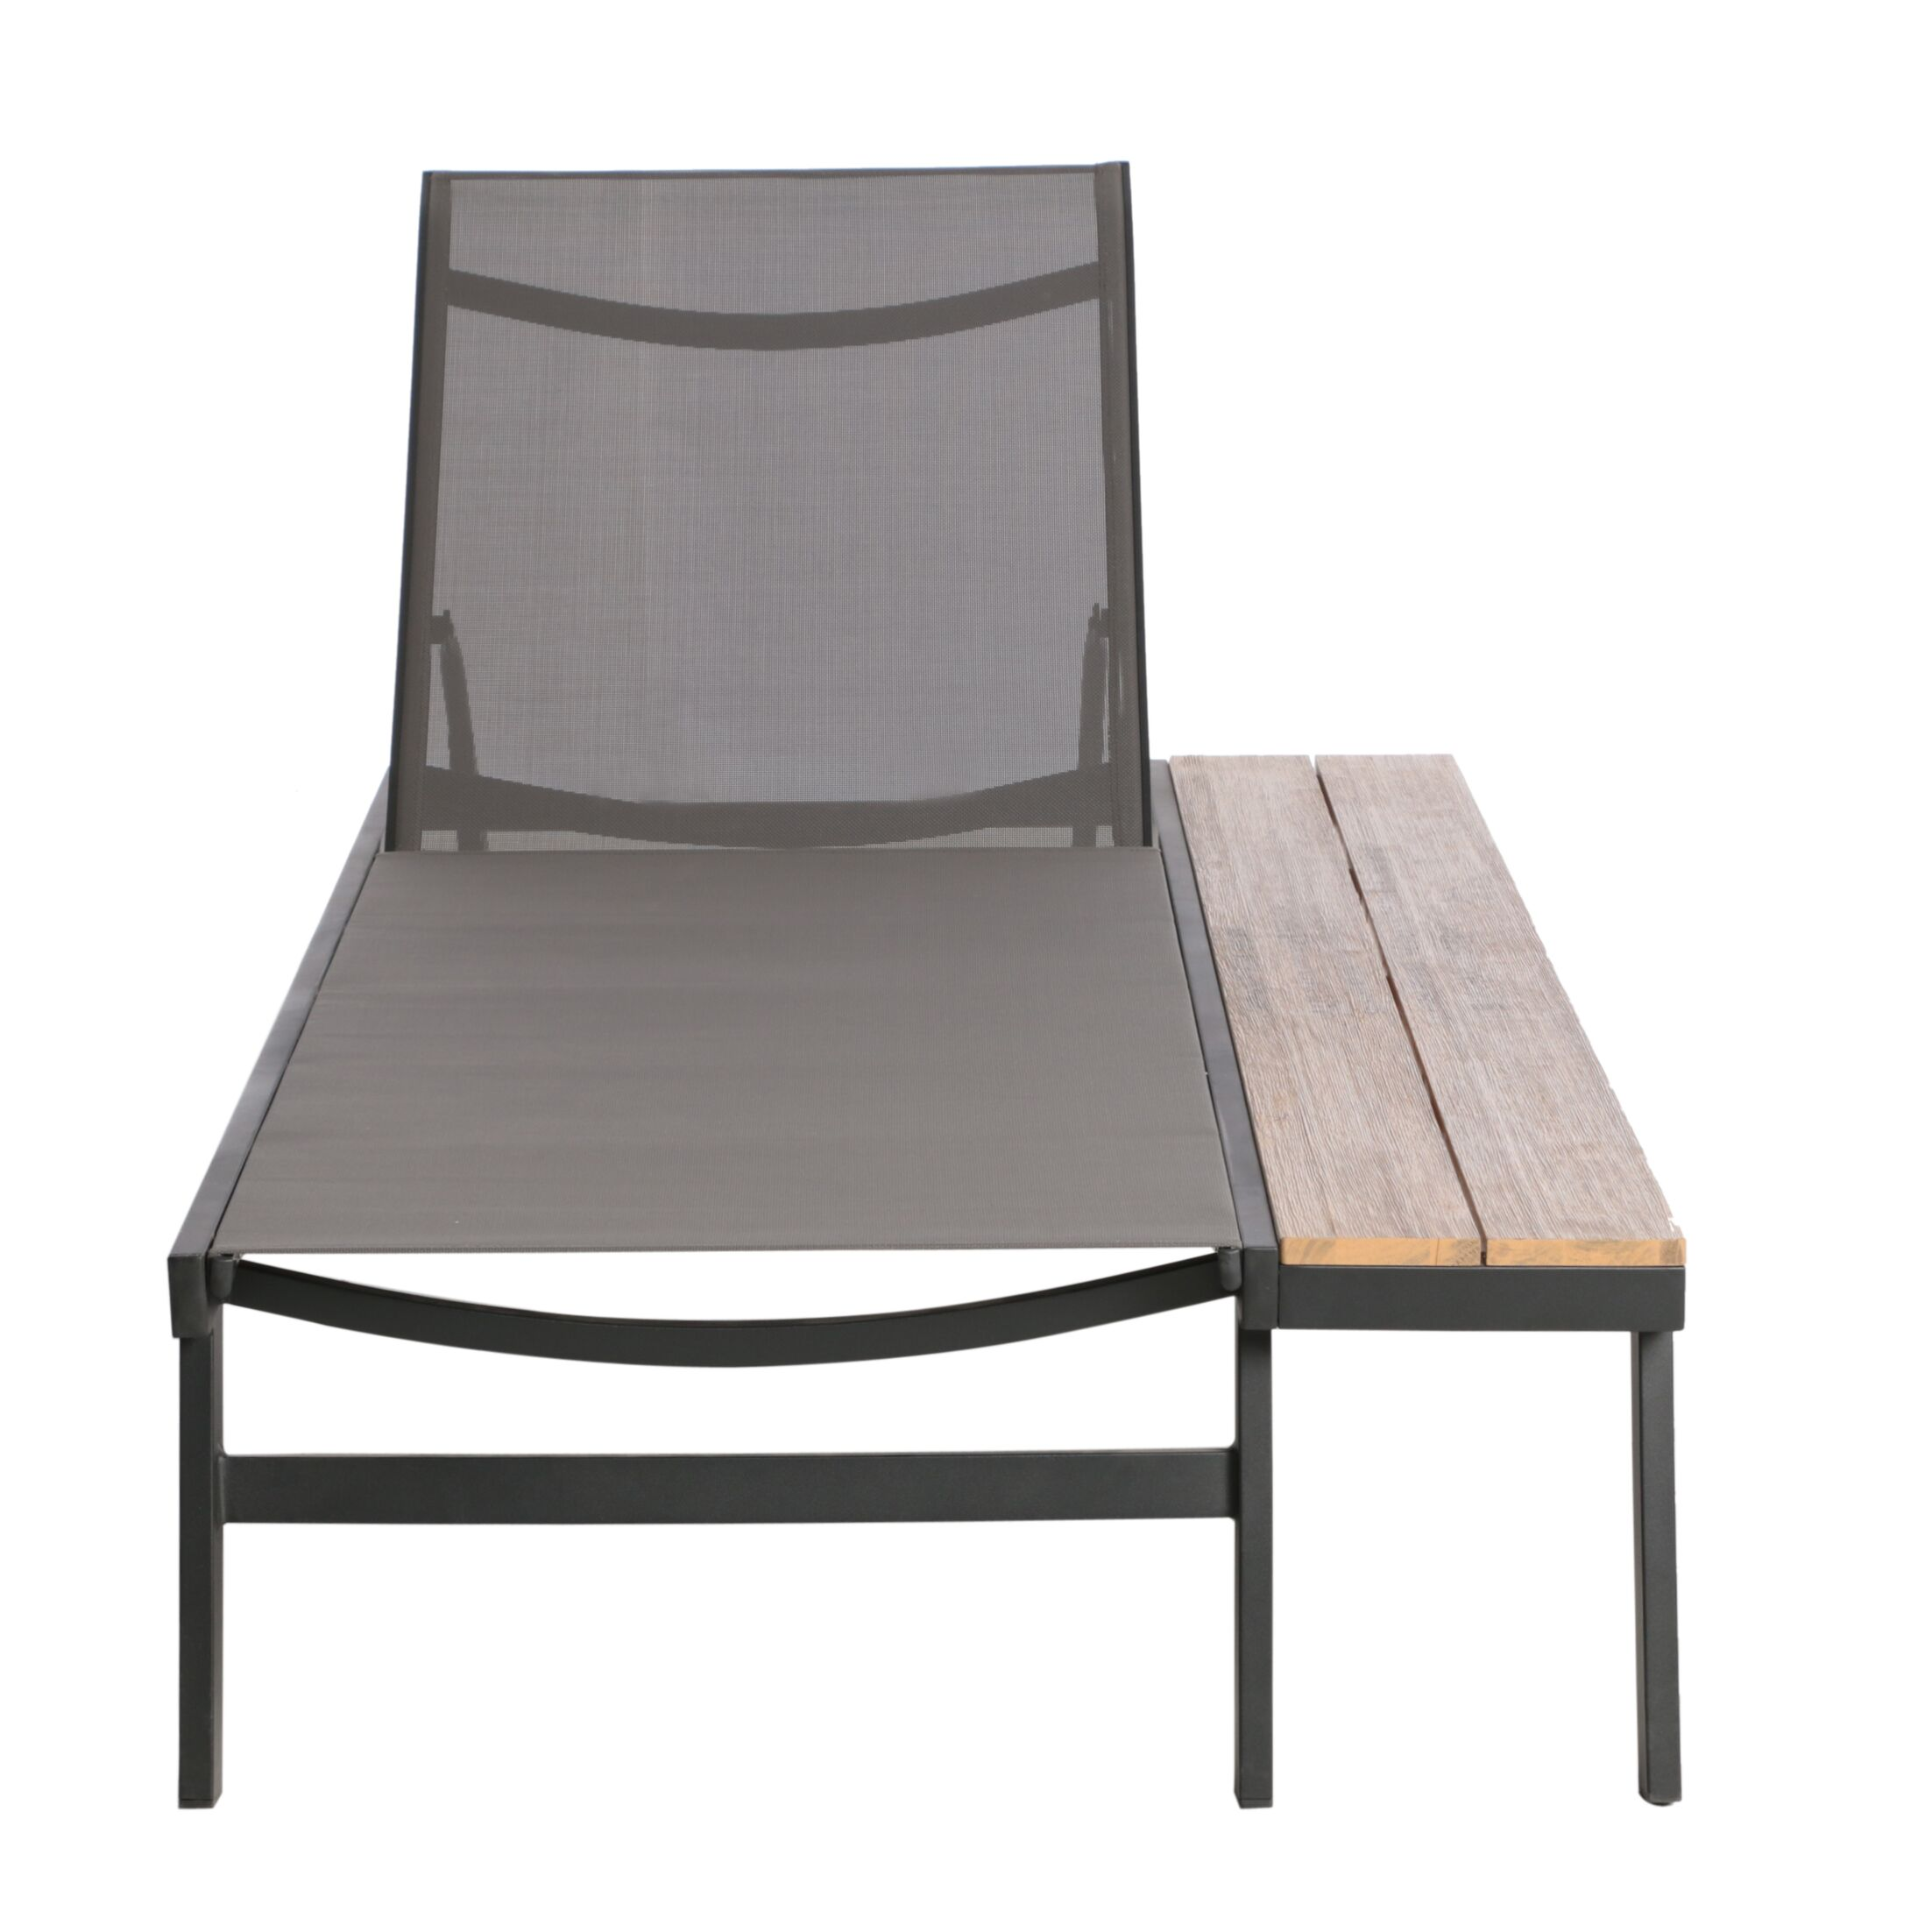 Achillee Reclining Chaise Lounge with Table